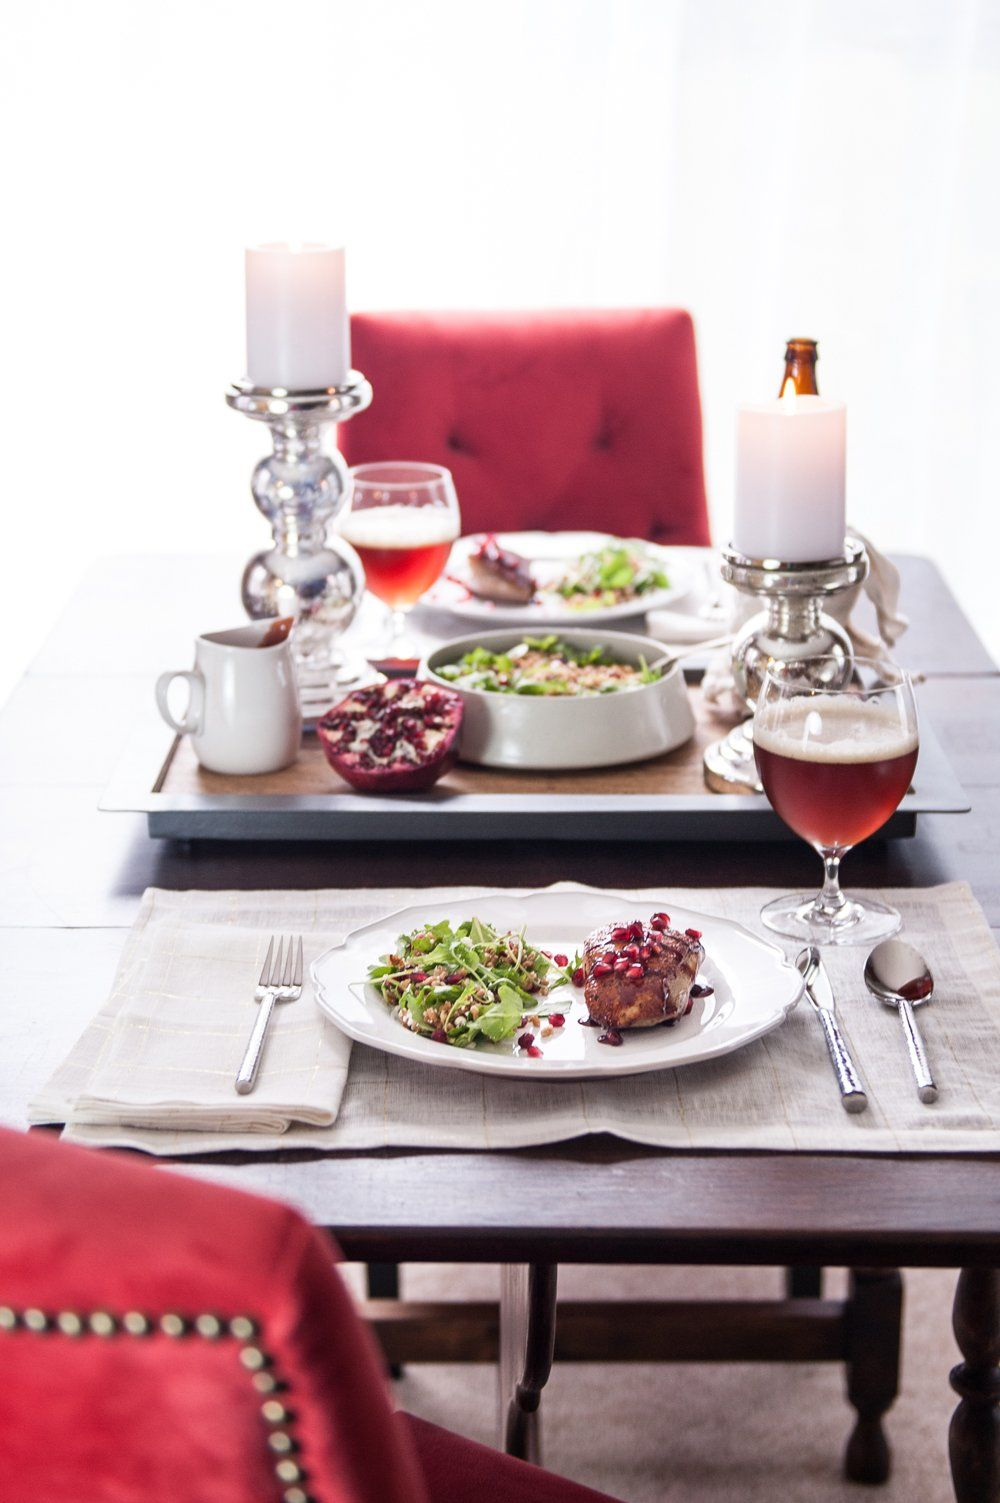 New Year's Eve Dinner Ideas for Two New years eve dinner